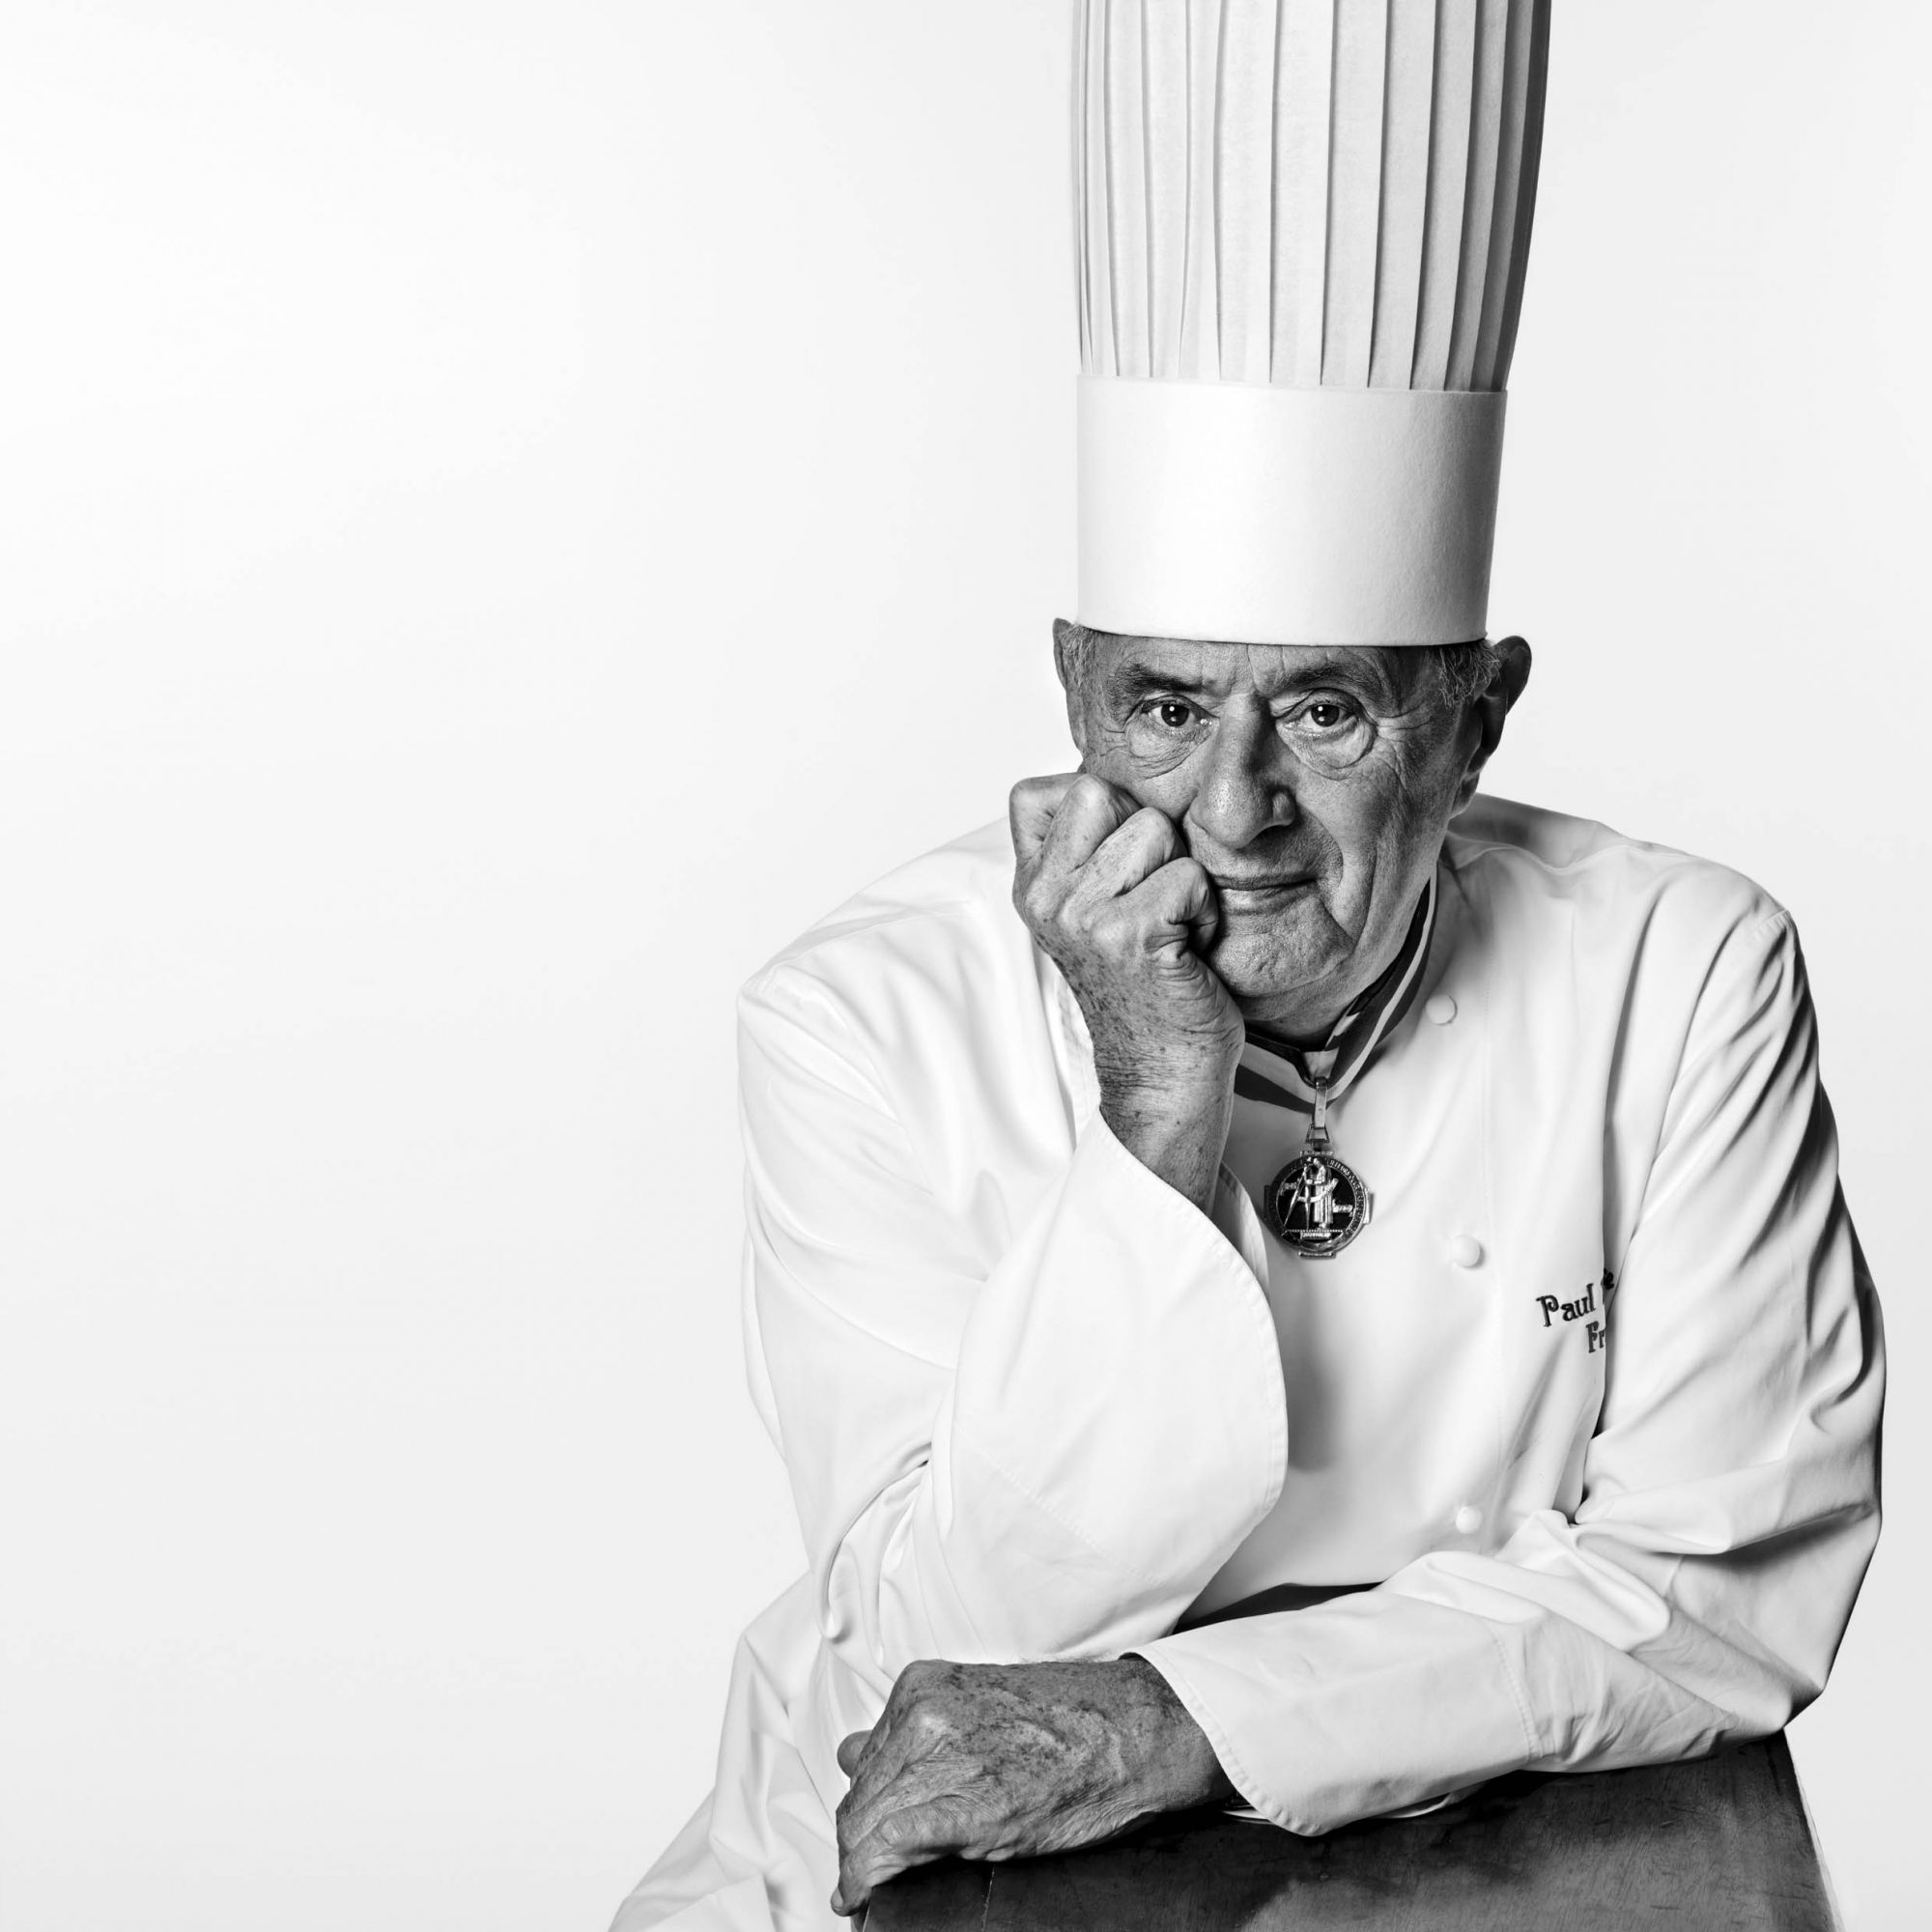 Singapore Chefs Remember Legendary Paul Bocuse, Pope Of French Cuisine